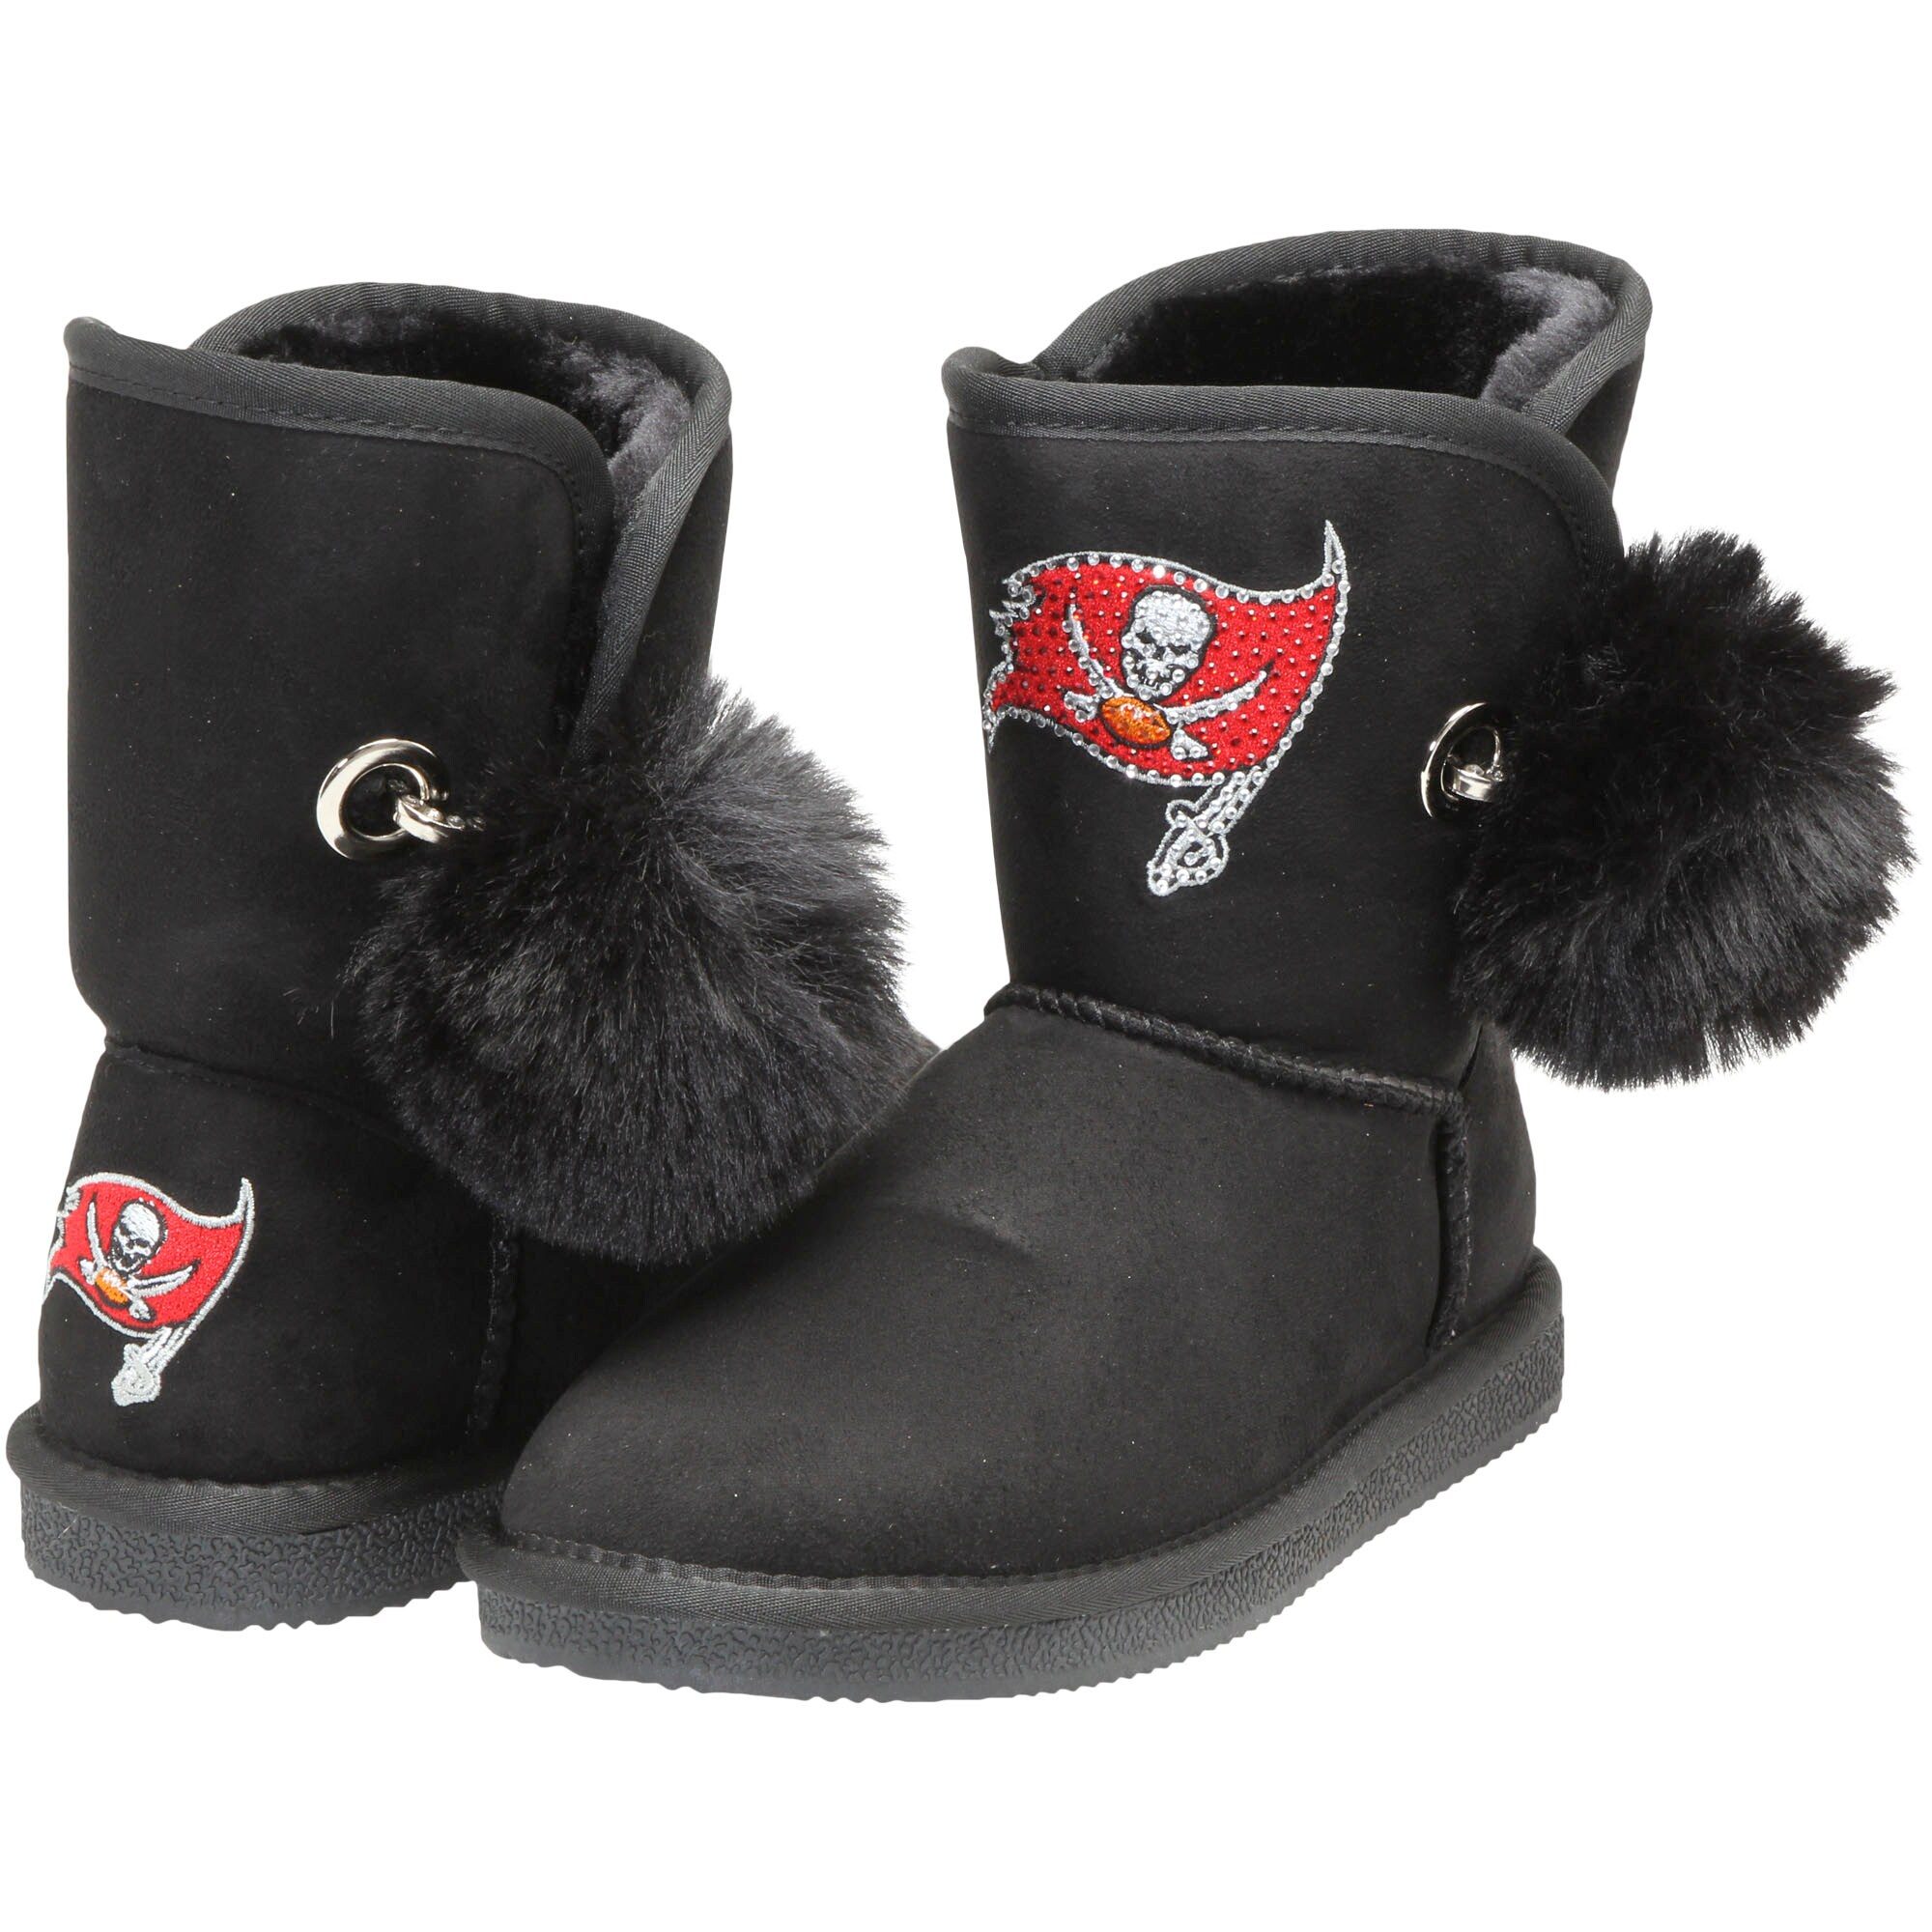 Tampa Bay Buccaneers Cuce Women's The Fumble Faux Fur Boots - Black